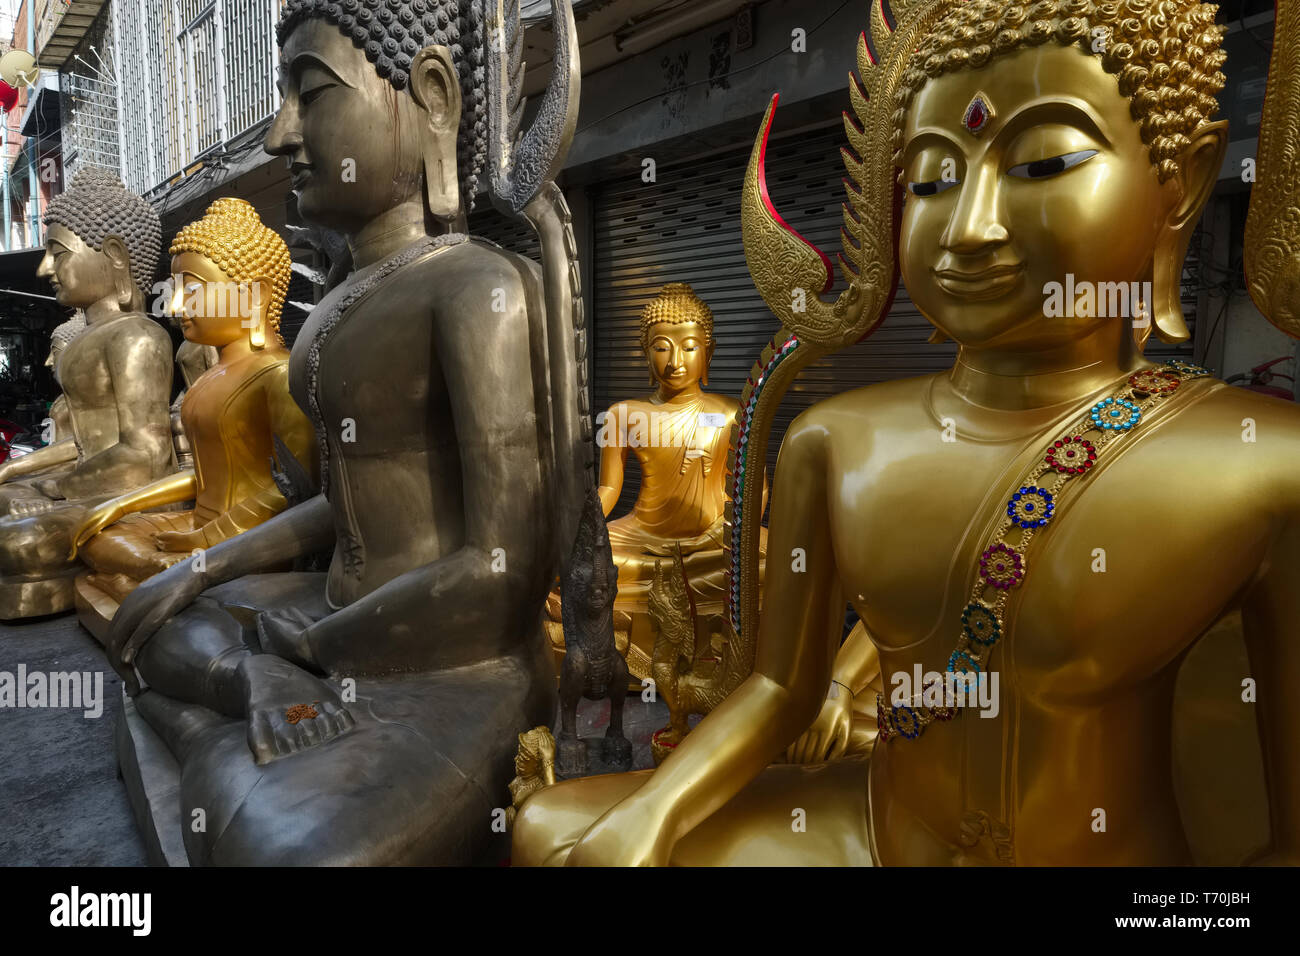 Buddha statues outside a factory for religious objects in Bamrung Muang Road, Bangkok, Thailand - Stock Image